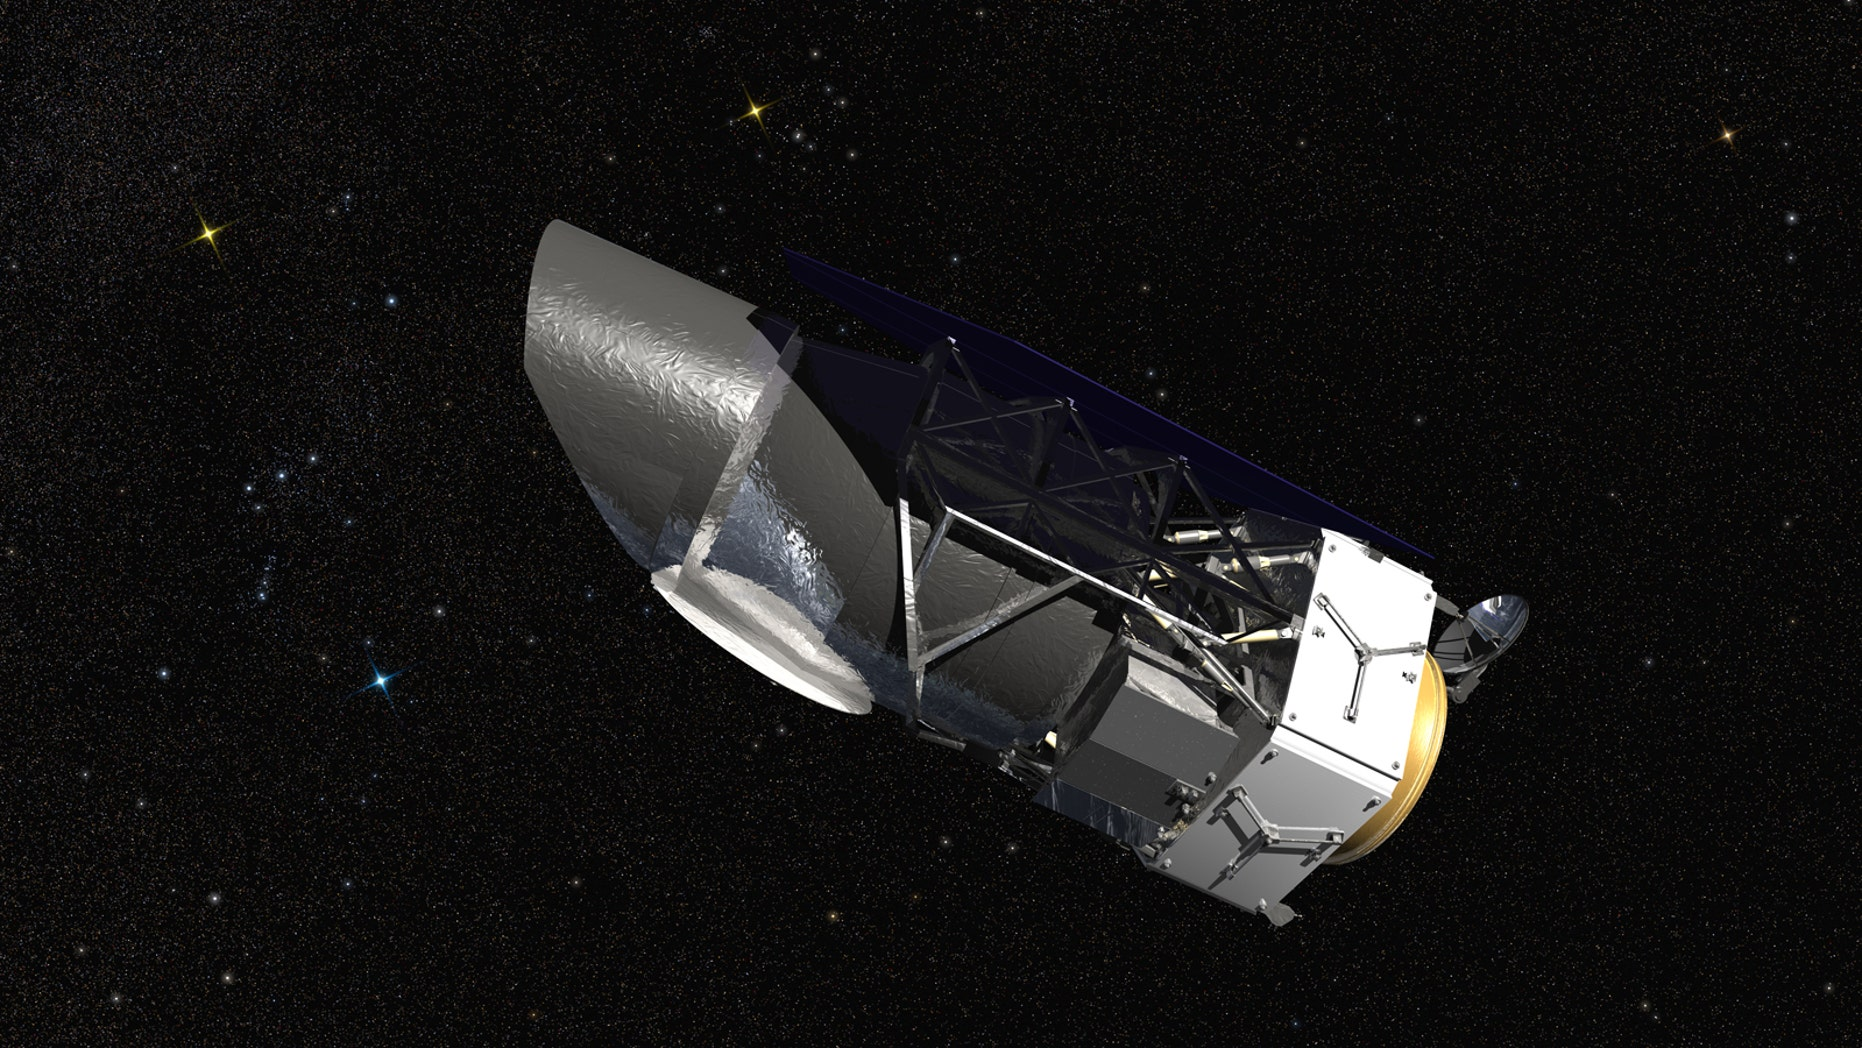 WFIRST, the Wide Field Infrared Survey Telescope, is shown here in an artist's rendering.(NASA/Goddard Space Flight Center/Conceptual Image Lab)